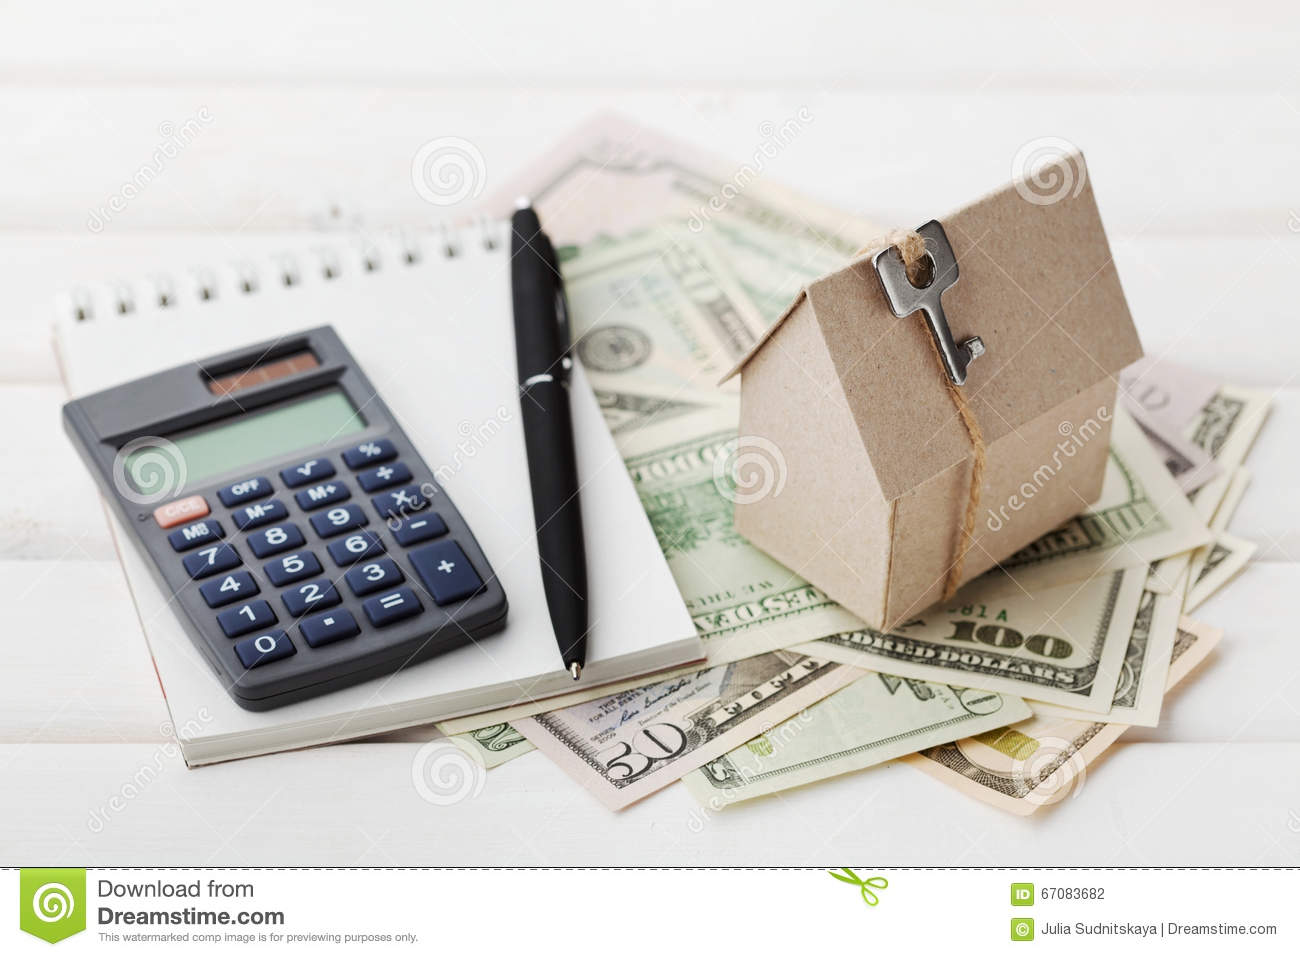 Model Of Cardboard House With Key Calculator Notebook